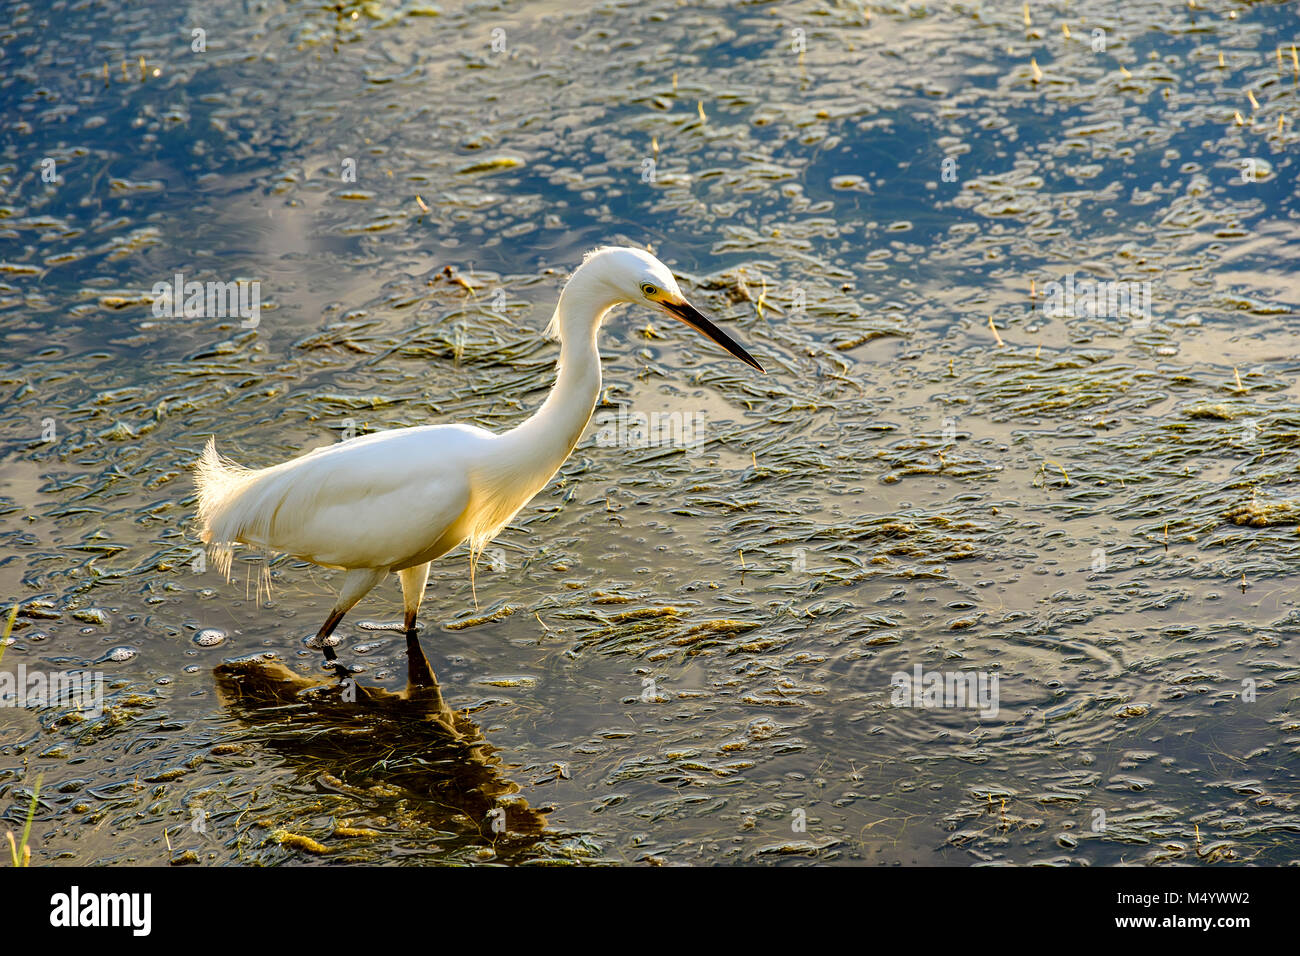 Young white heron walking through the waters and vegetation of a lake at afternoon - Stock Image